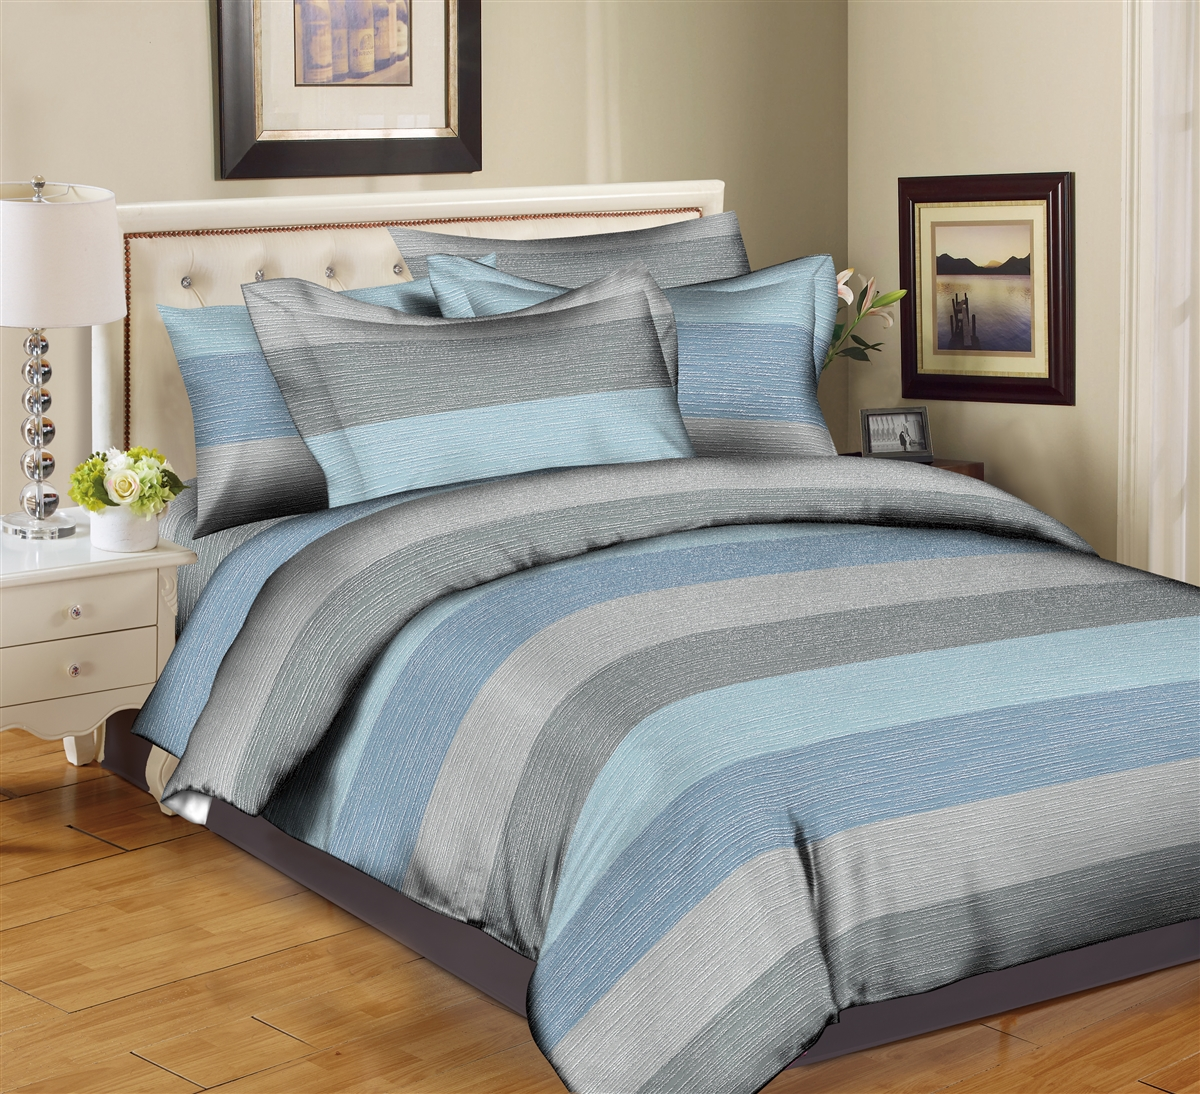 Better Bed Collection: Fine Lines- Blue 8PC Twin Bedding Set